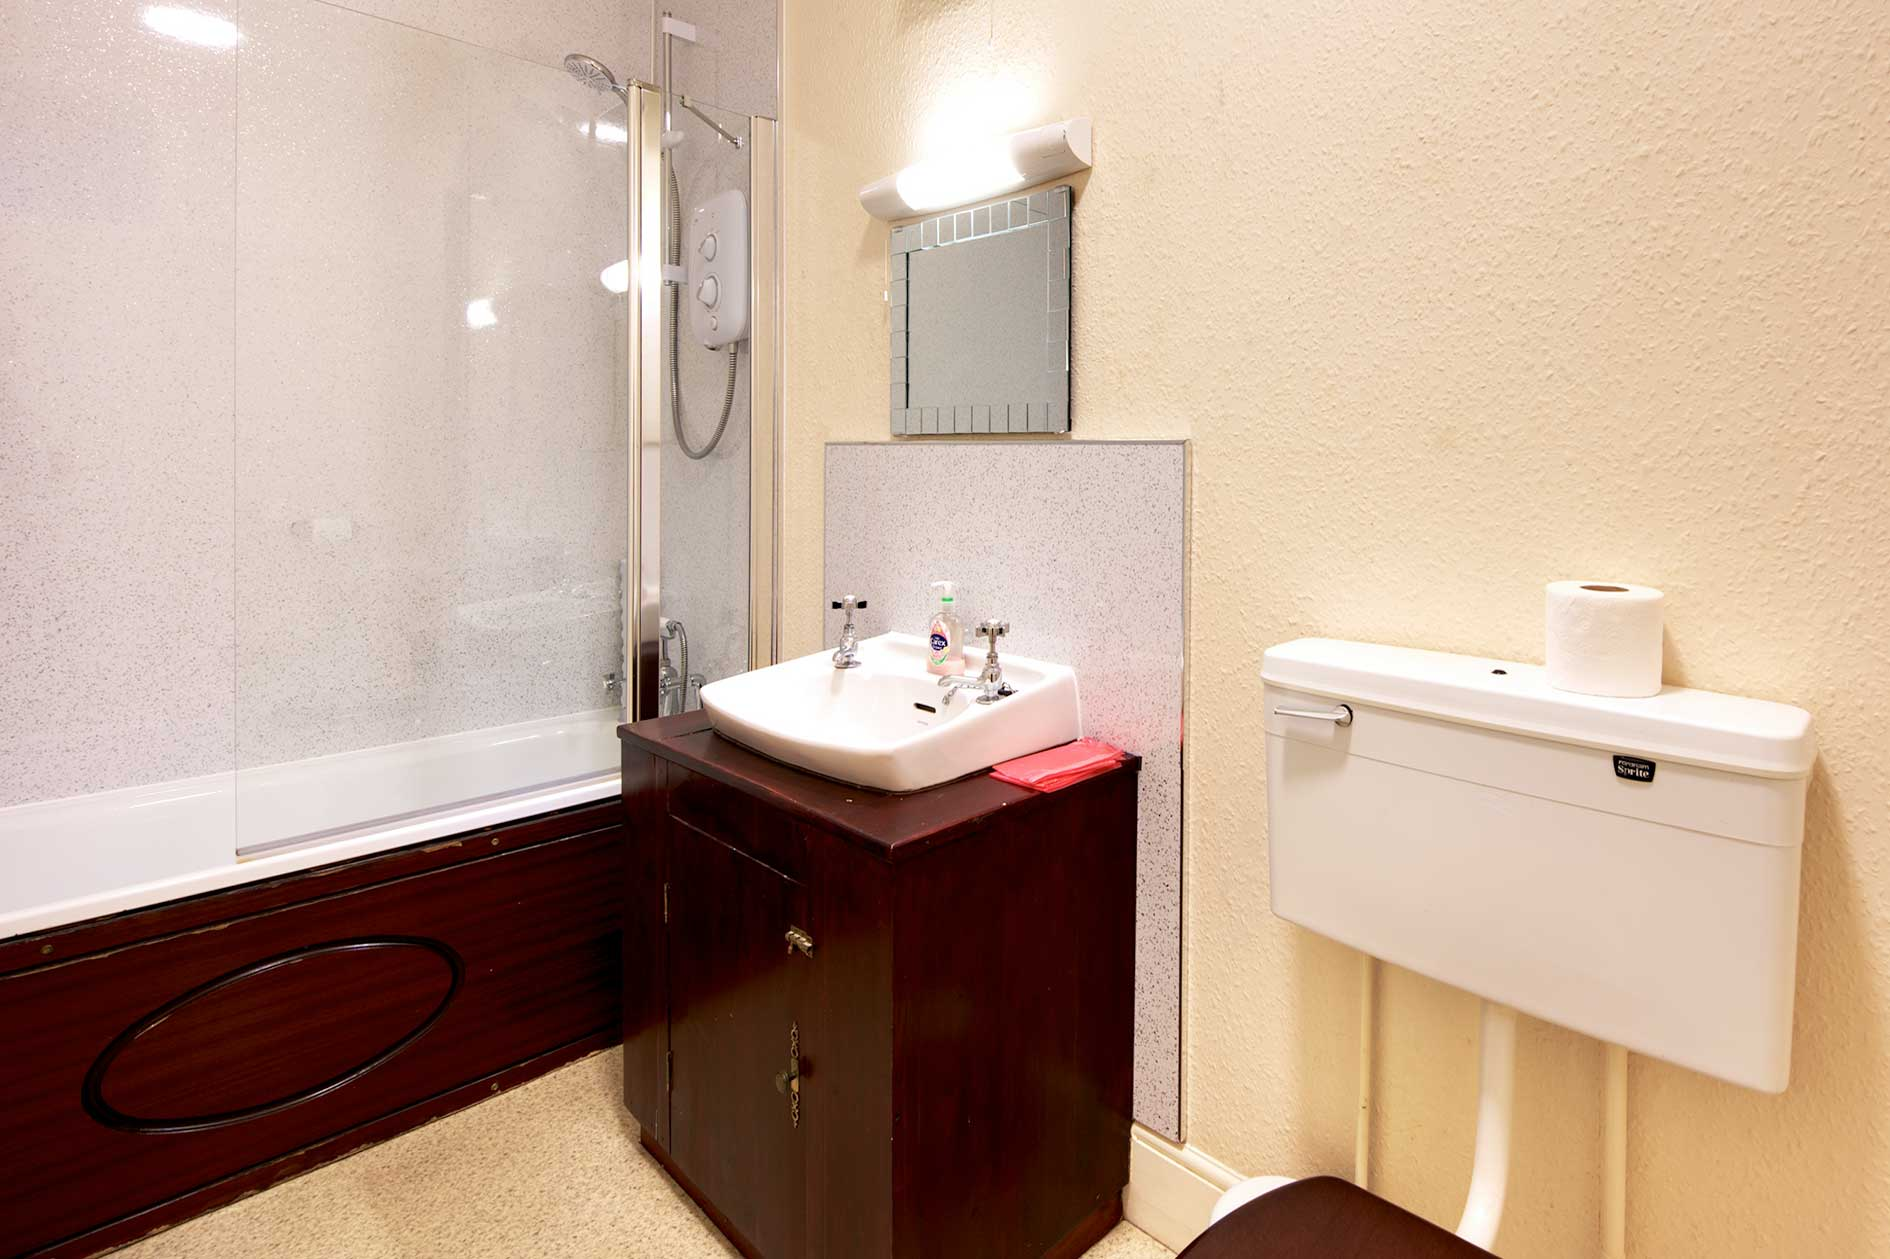 Light Bathroom With Shower Bath, Sink And Toilet